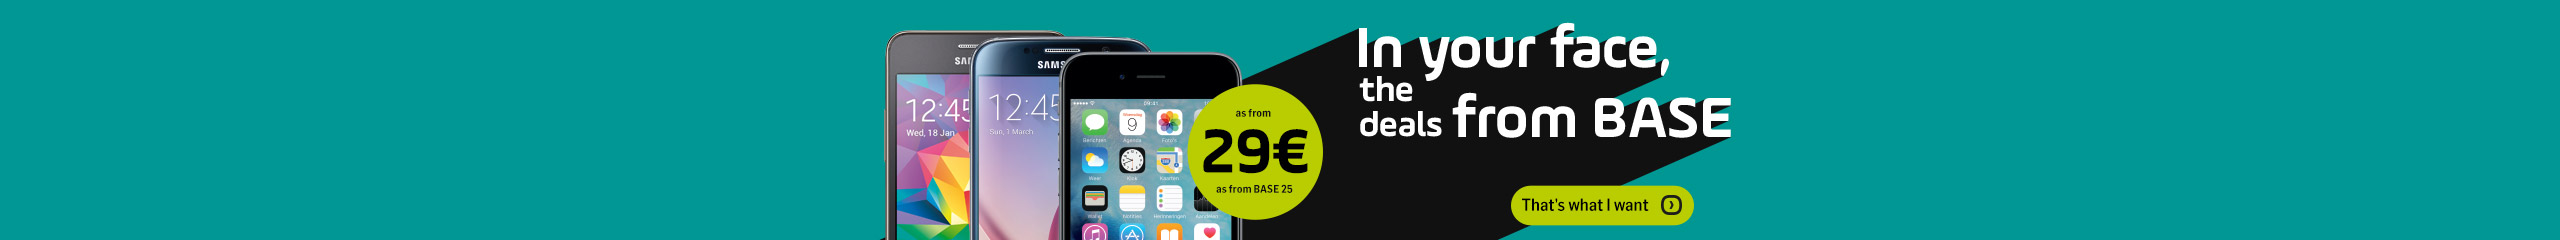 Smartphones from € 29 - BASE promo sales